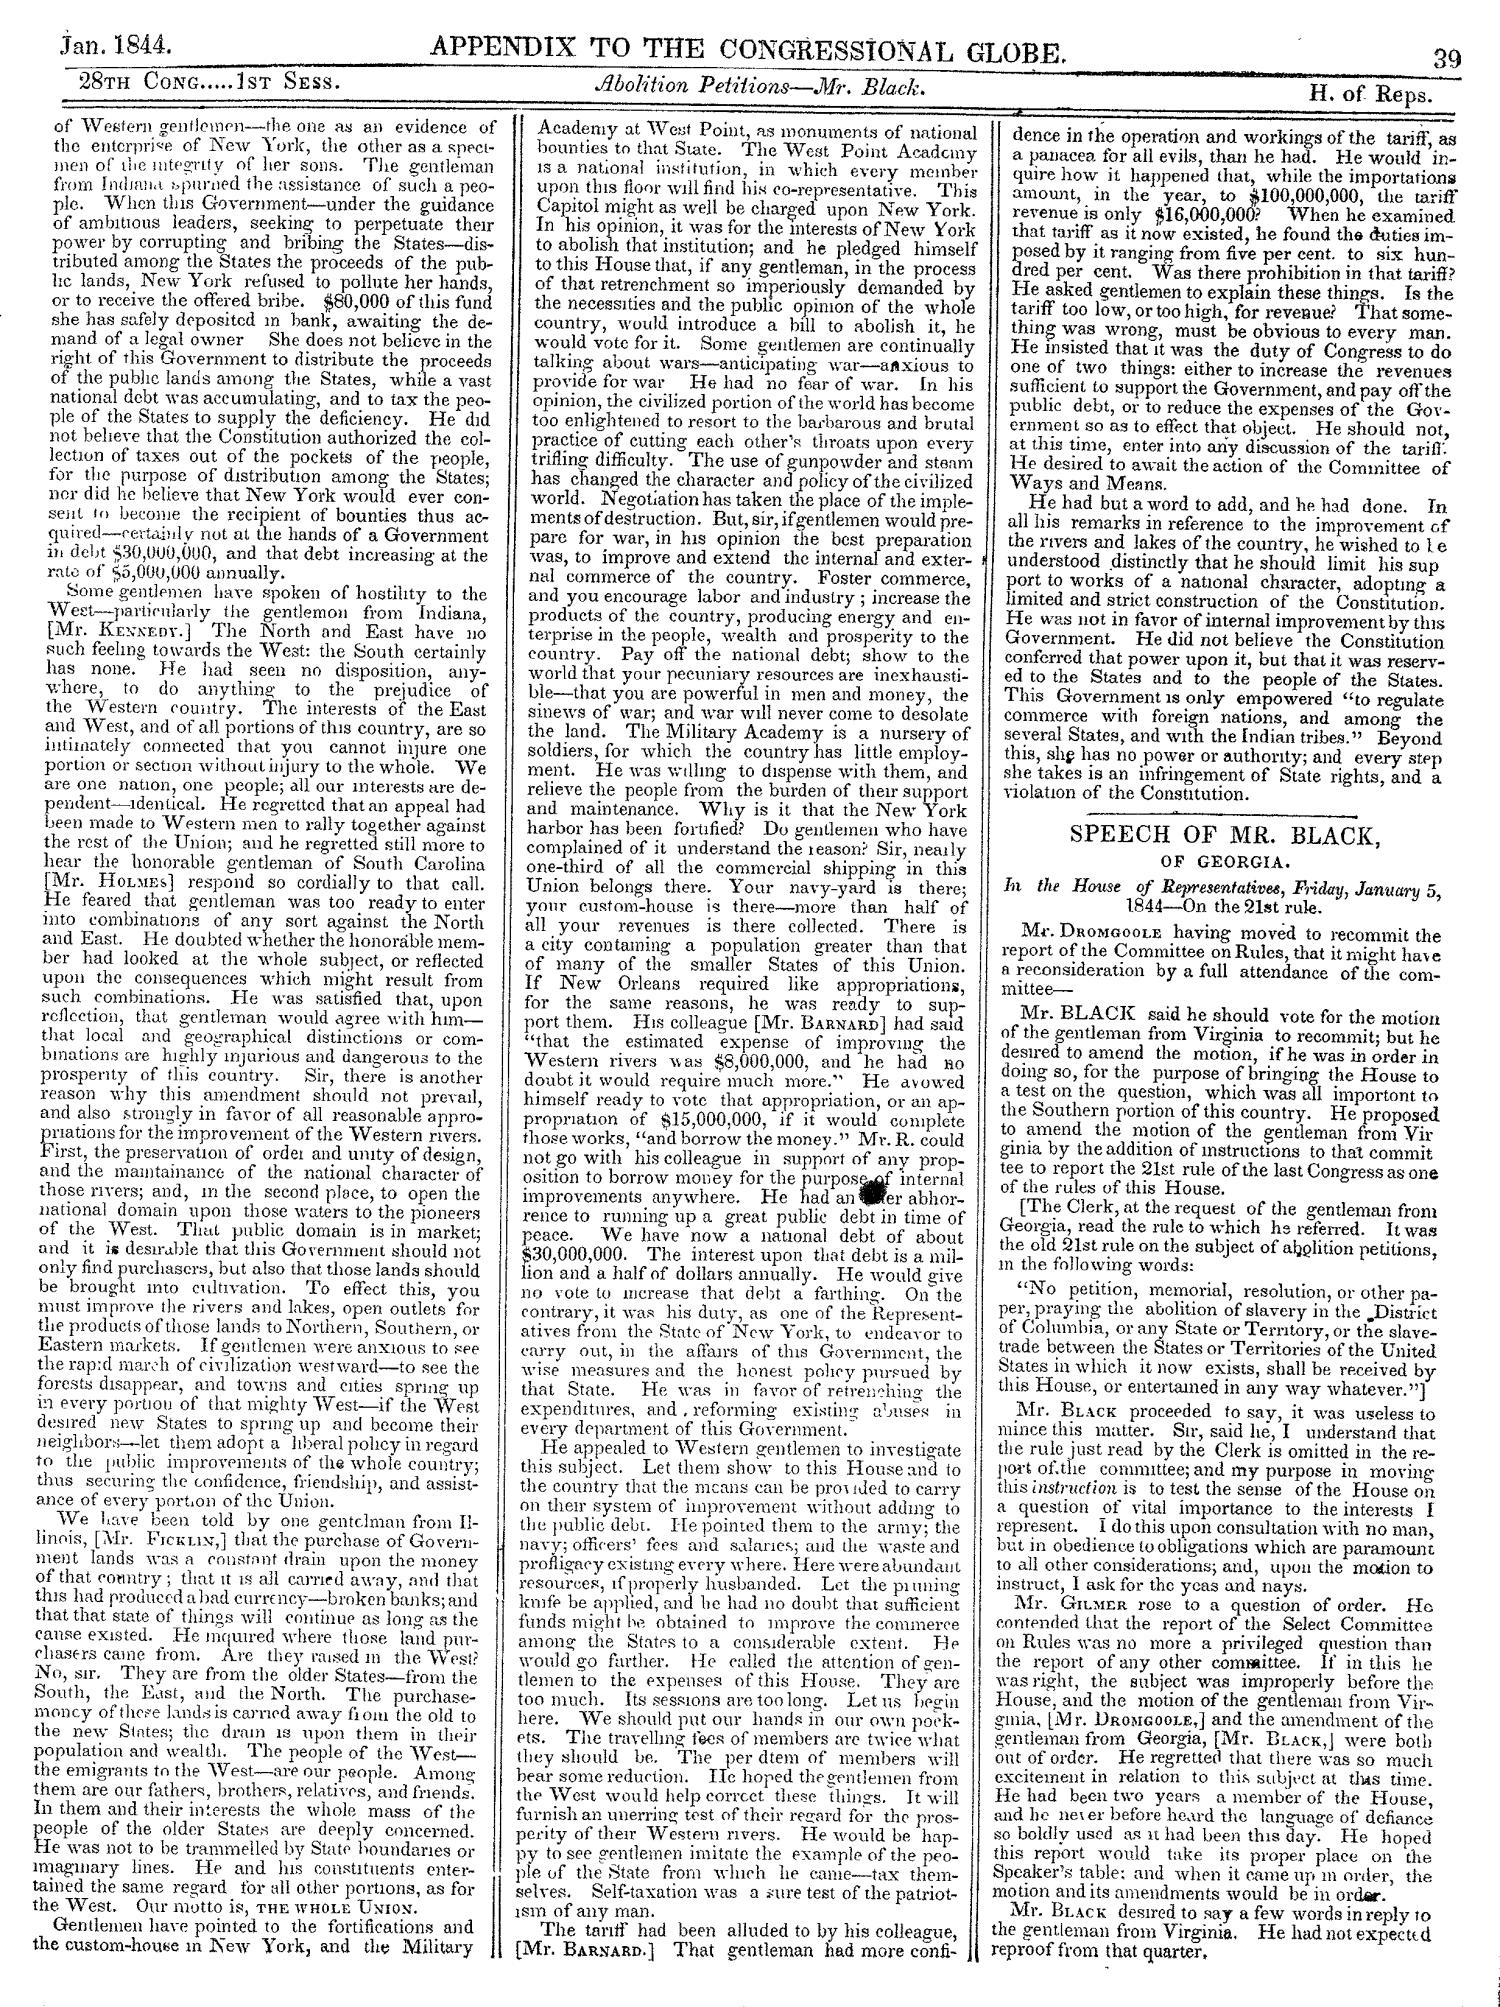 The Congressional Globe, Volume 13, Part 2: Twenty-Eighth Congress, First Session                                                                                                      39